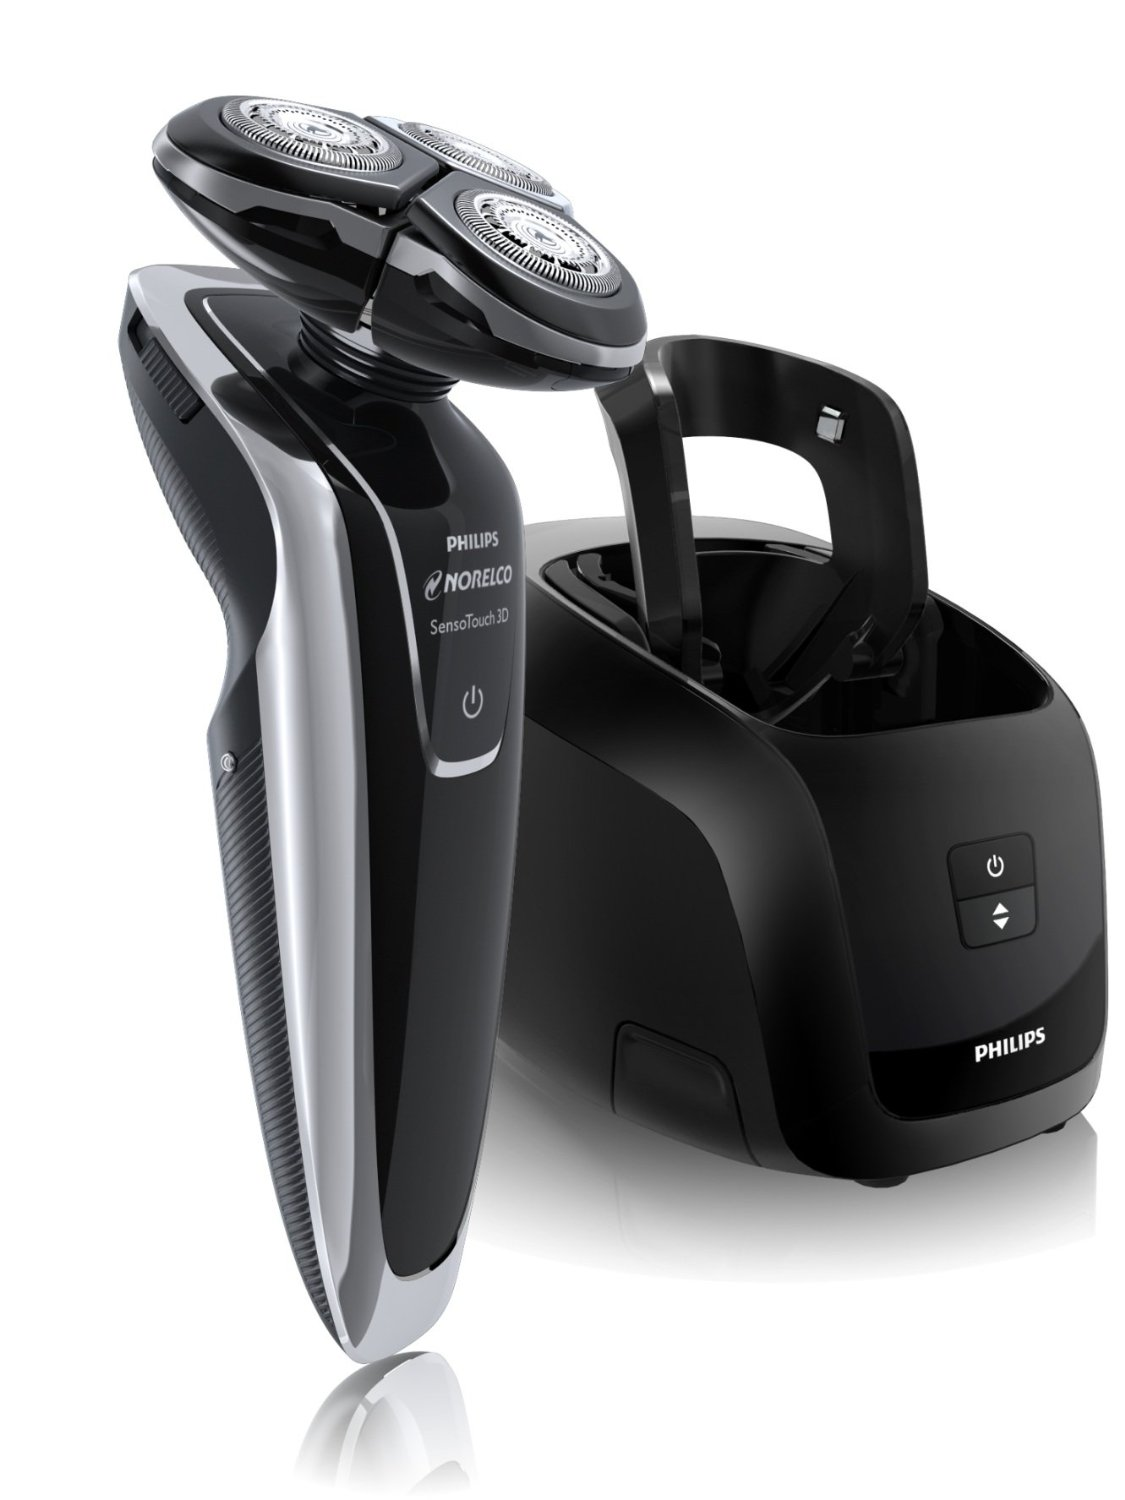 Review of Philips Norelco 1280X SensoTouch 3D Electric Razor with Jet Clean System